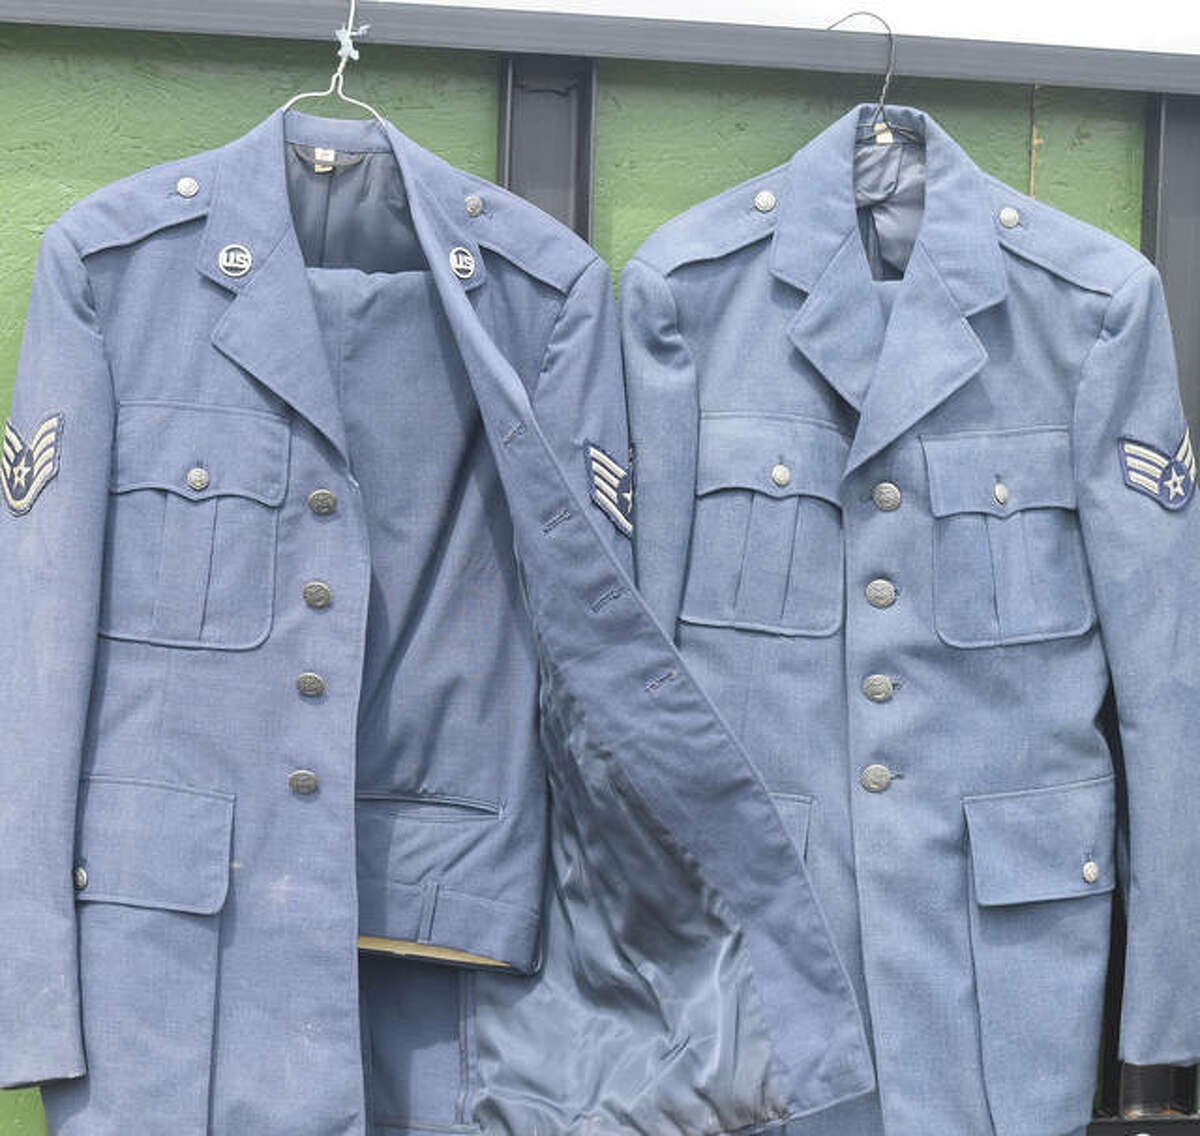 Two military uniforms were found in an unoccupied building in Jacksonville.